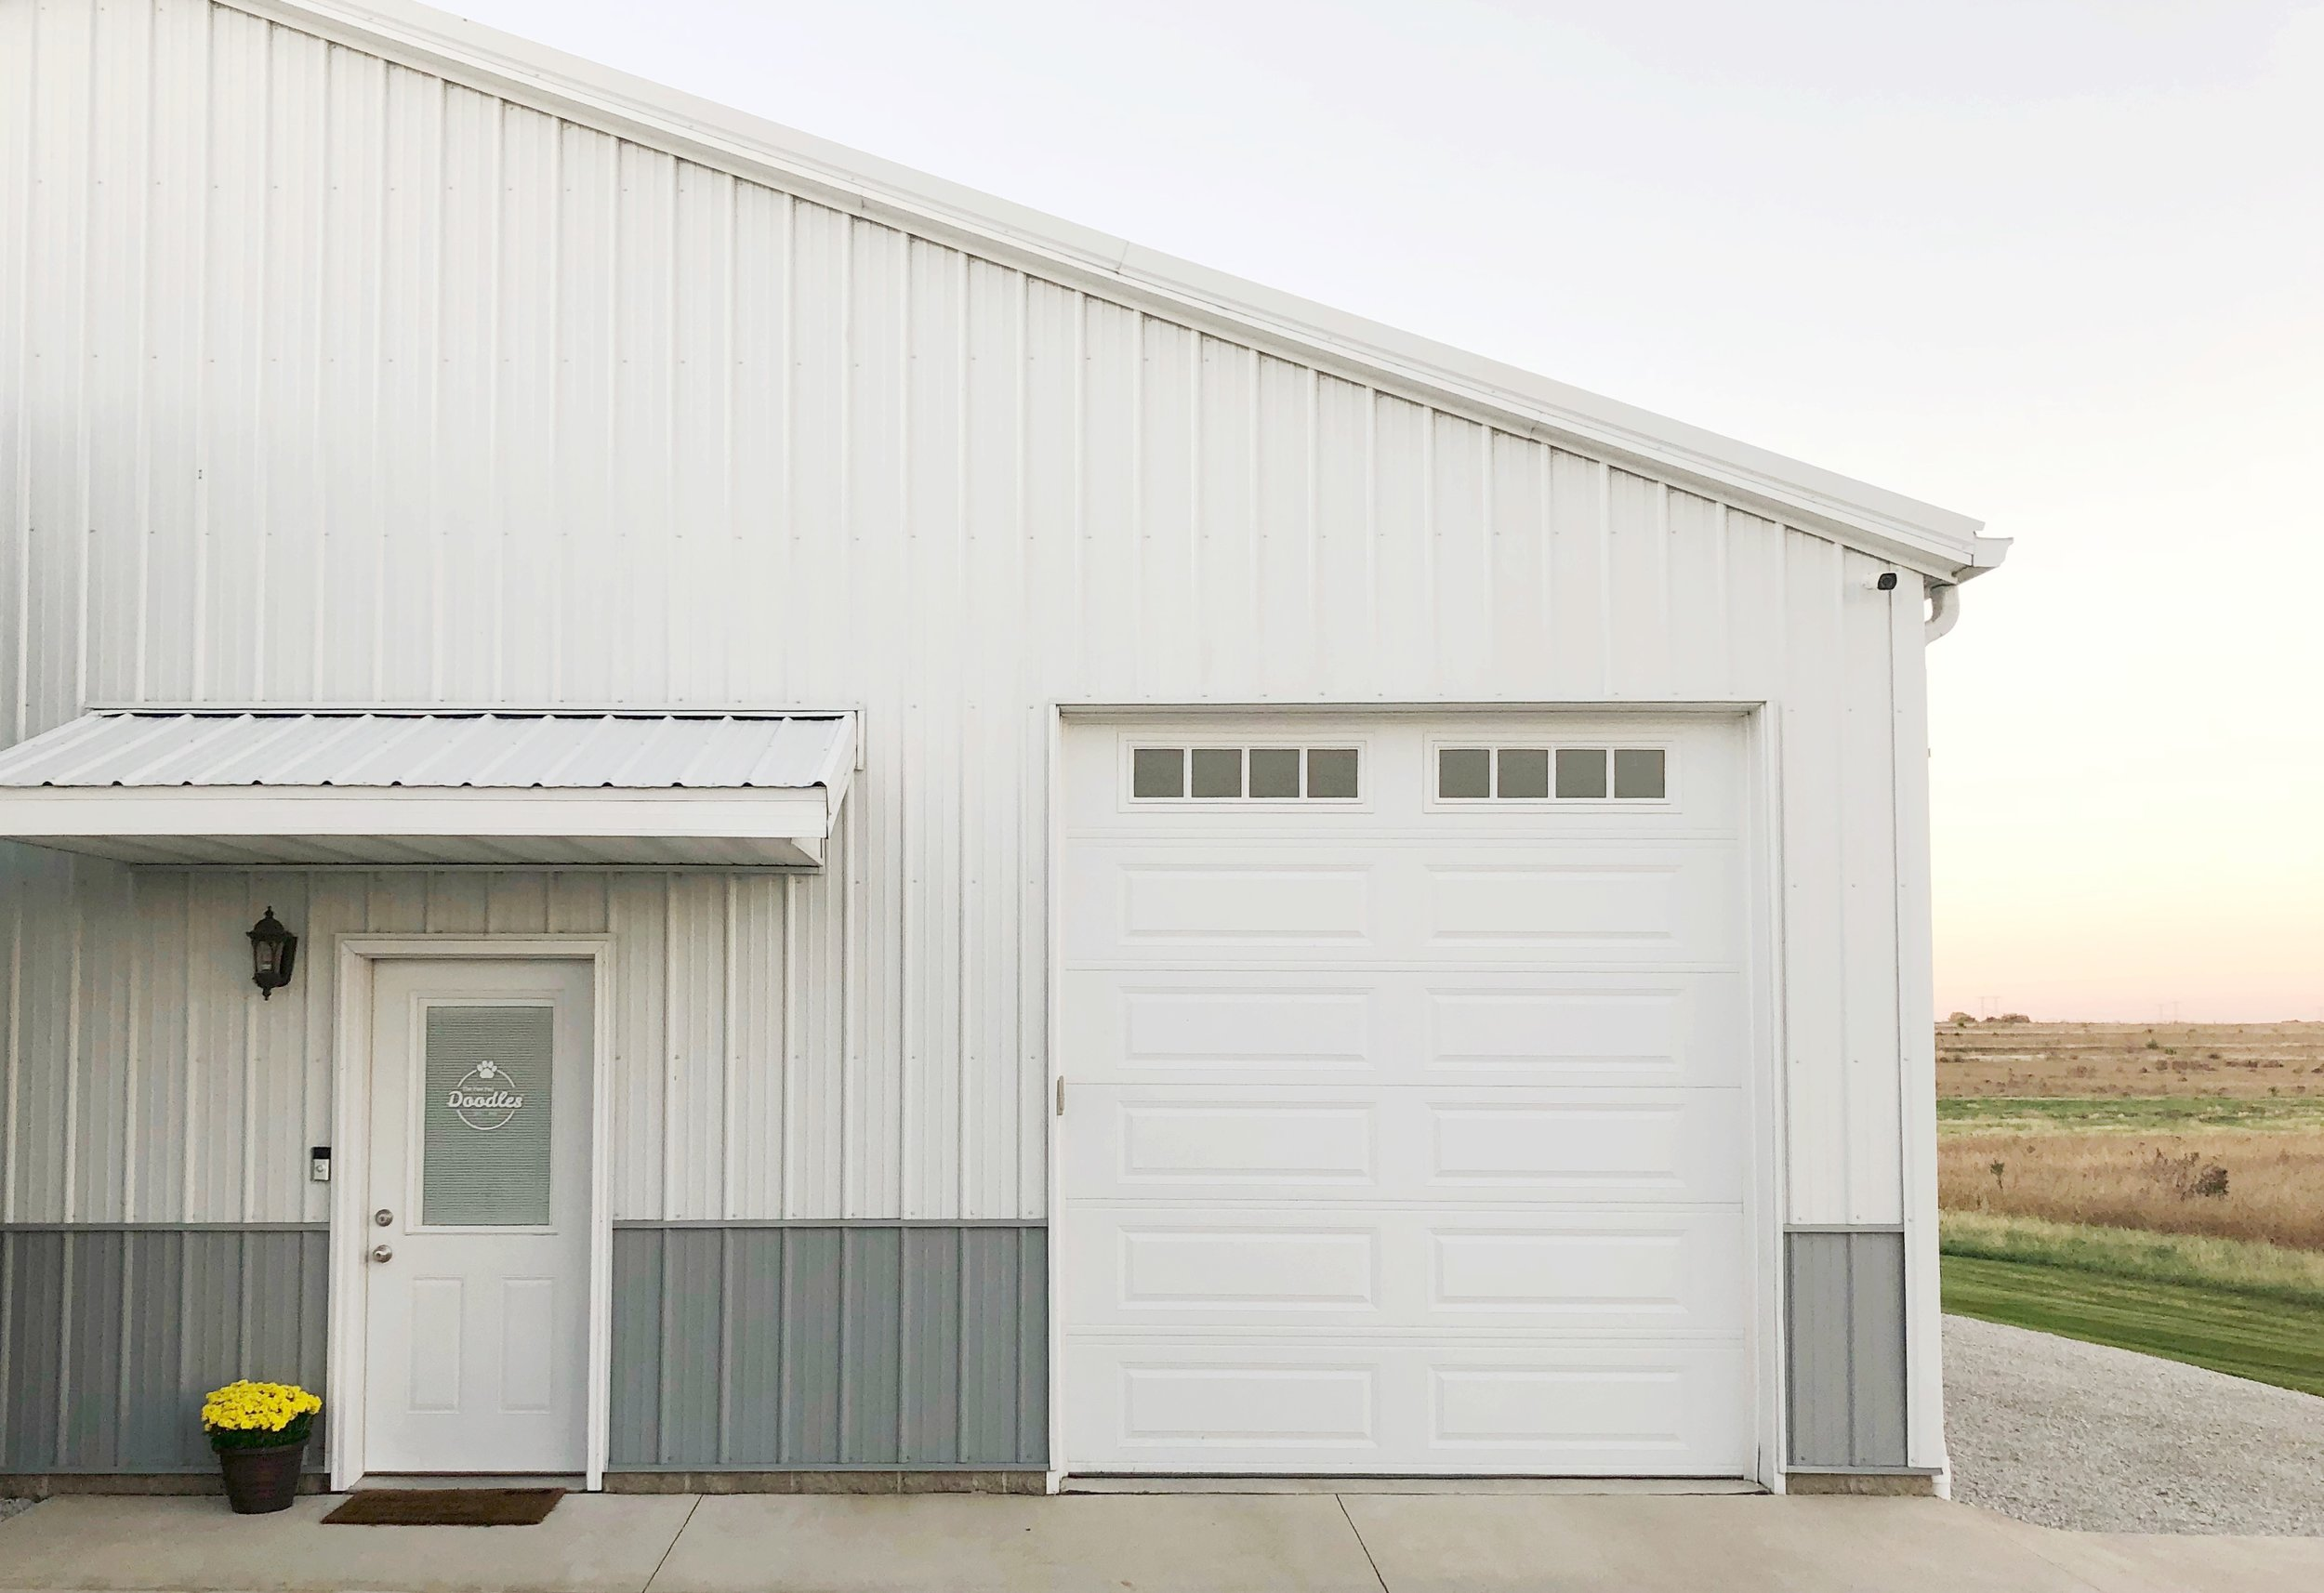 This is our facility where you'll be welcomed into our showroom. We have parking in front of these doors.